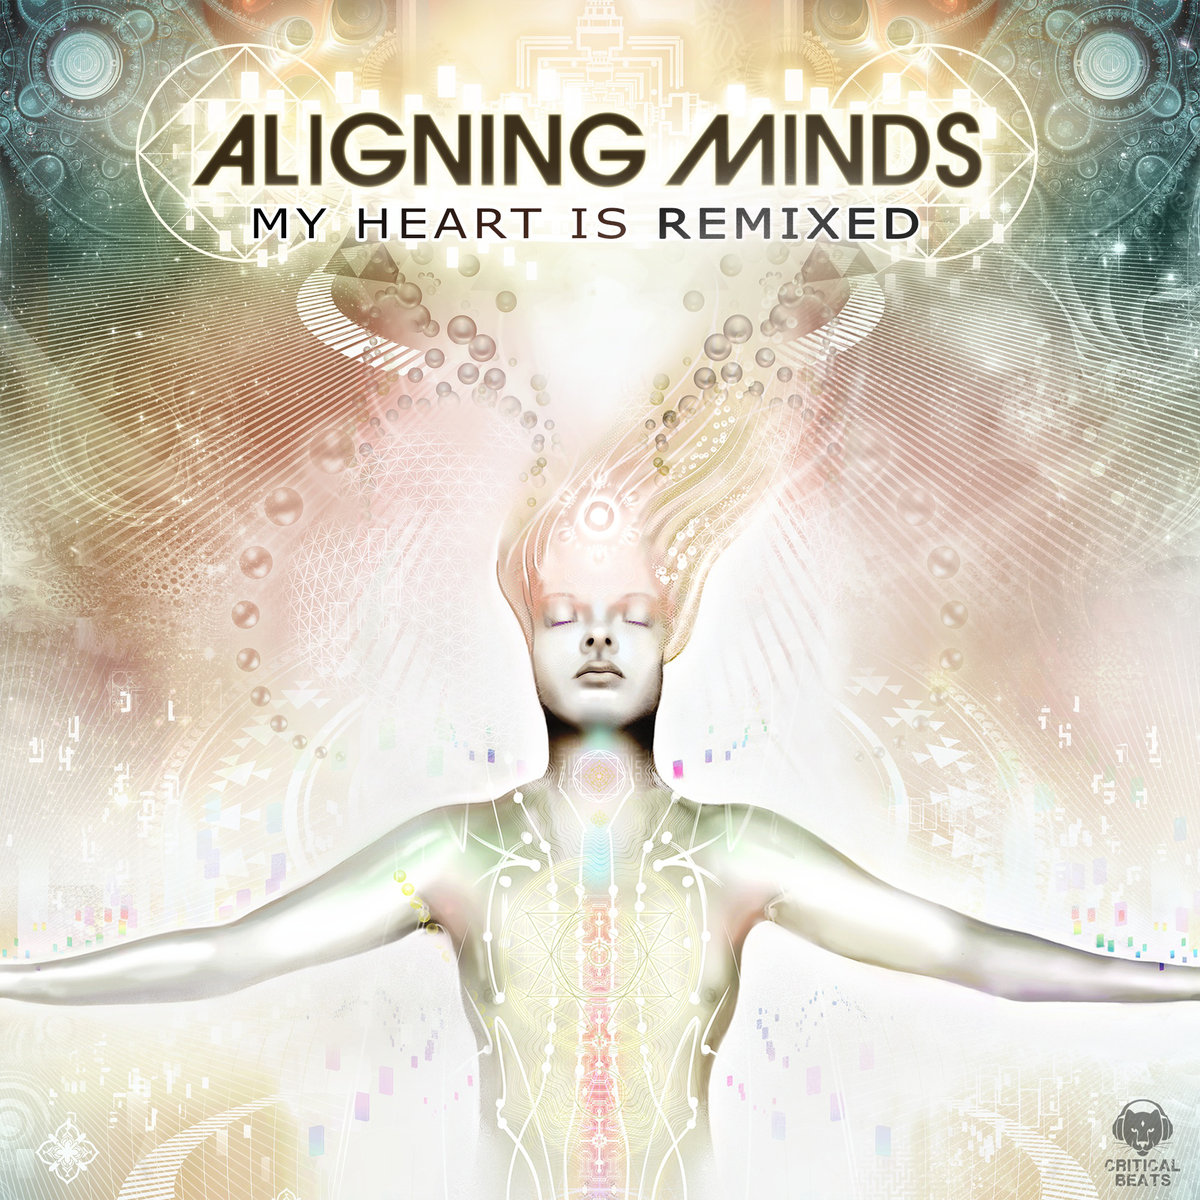 Aligning Minds - A Noble Truth (Resonant Language Remix) @ 'My Heart Is Remixed' album (asheville, baltimore)